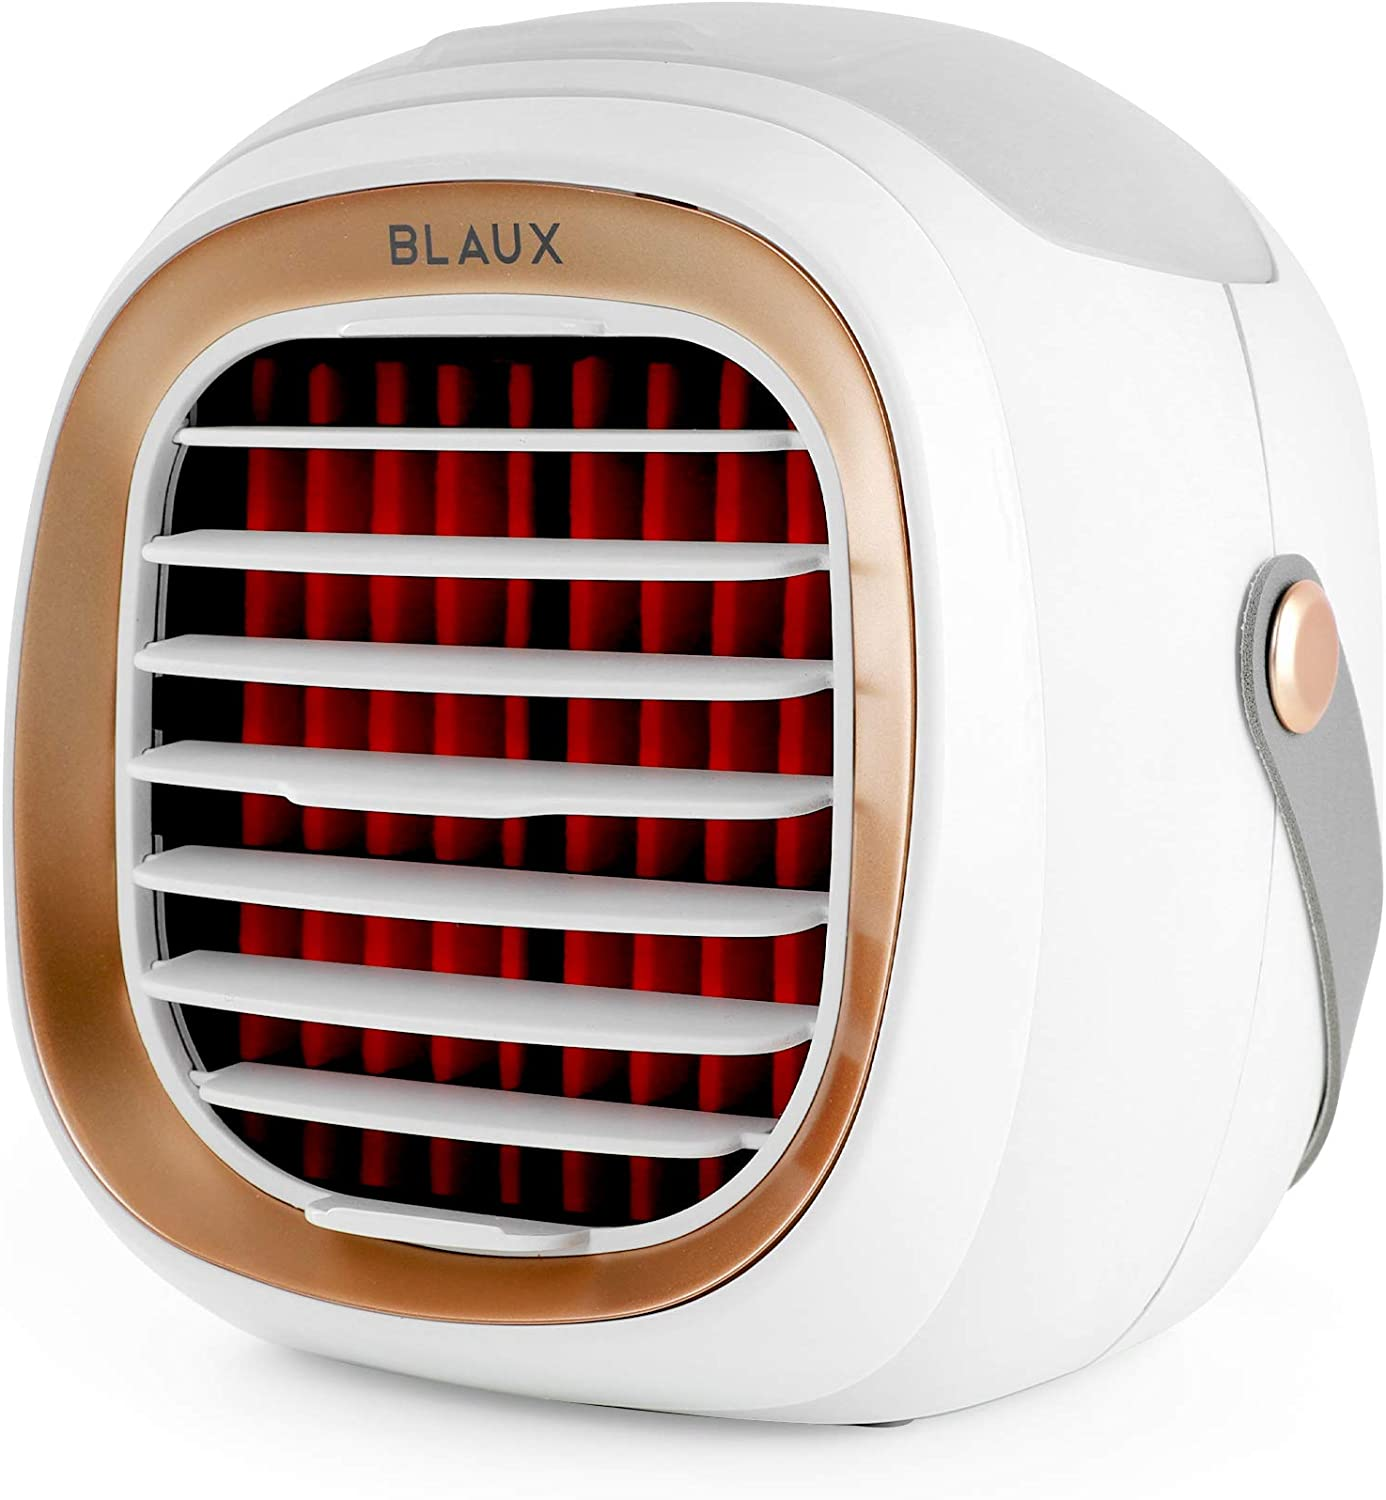 Best Powerful Rechargeable Mini Cooler: BLAUX Portable Small Fast Cooling Air Cooler For.